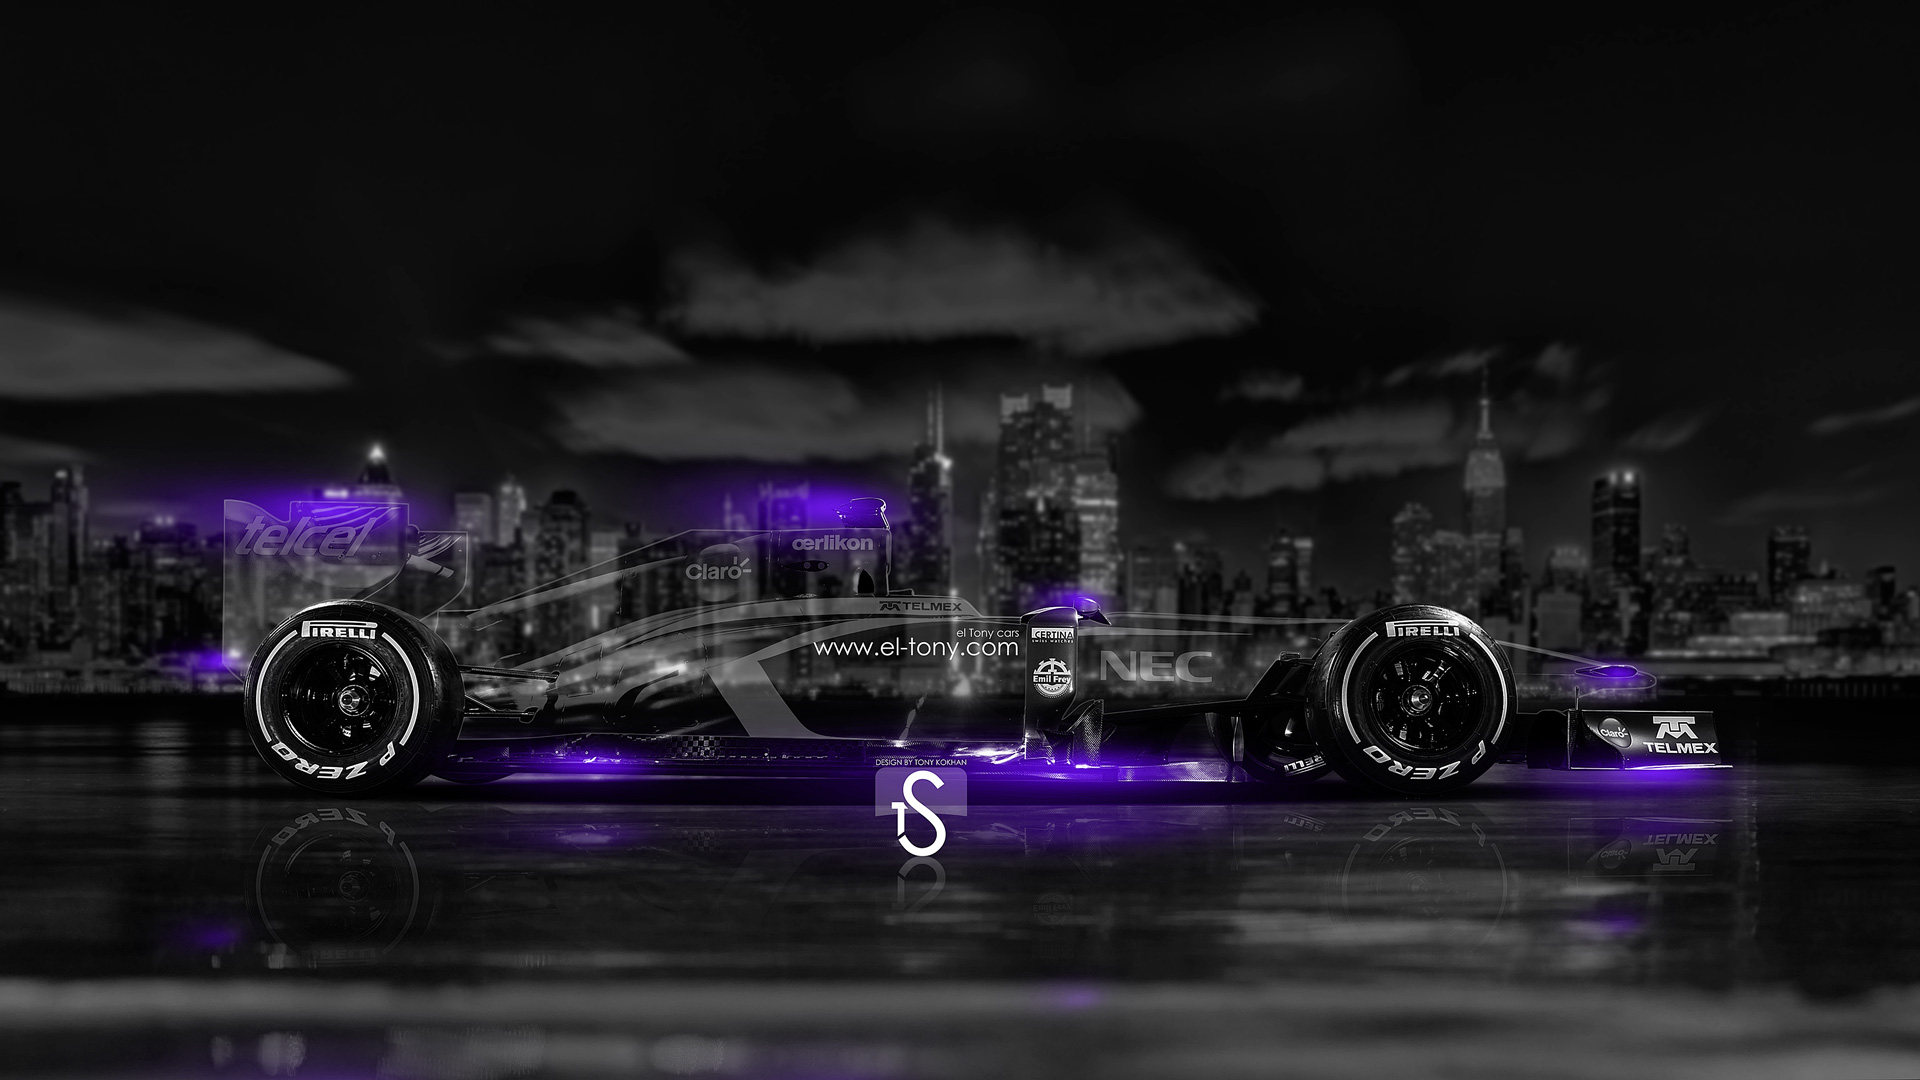 Captivating F1 Crystal City Car 2014 Violet Neon HD